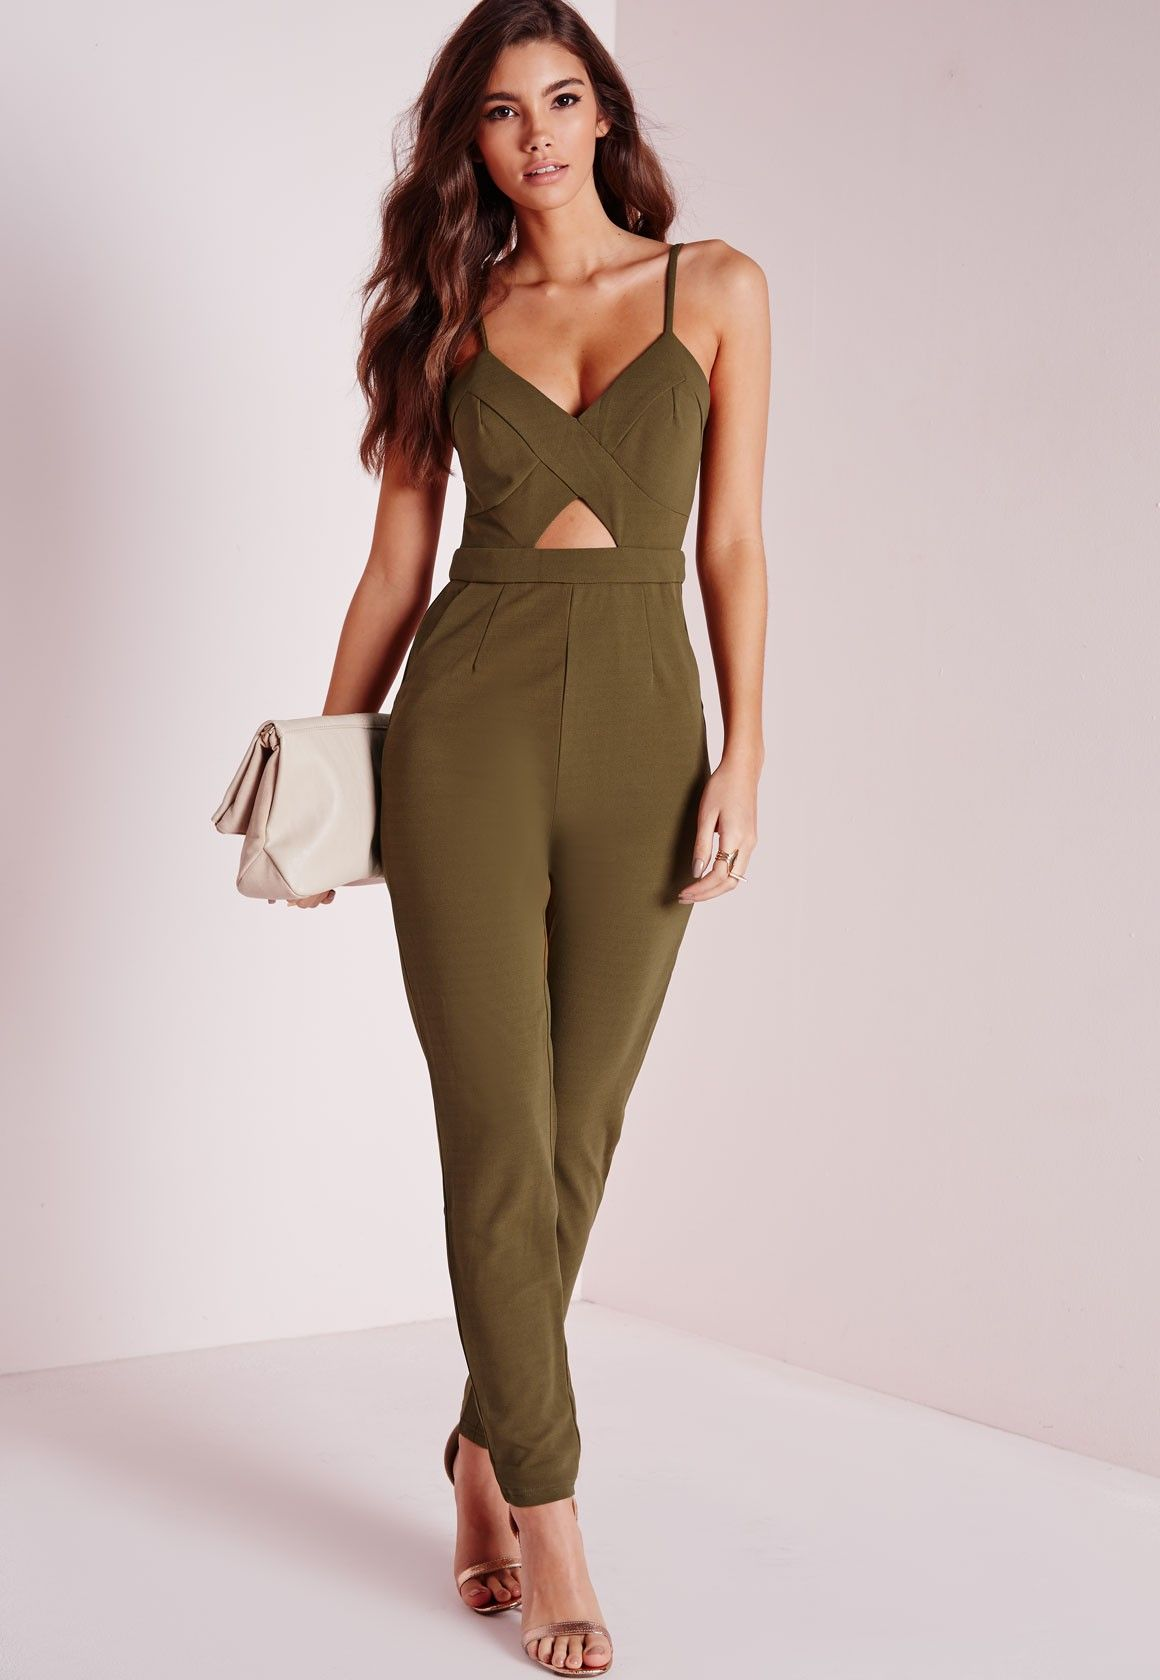 873d757aed87 Missguided - Strappy Cut Out Jumpsuit Khaki